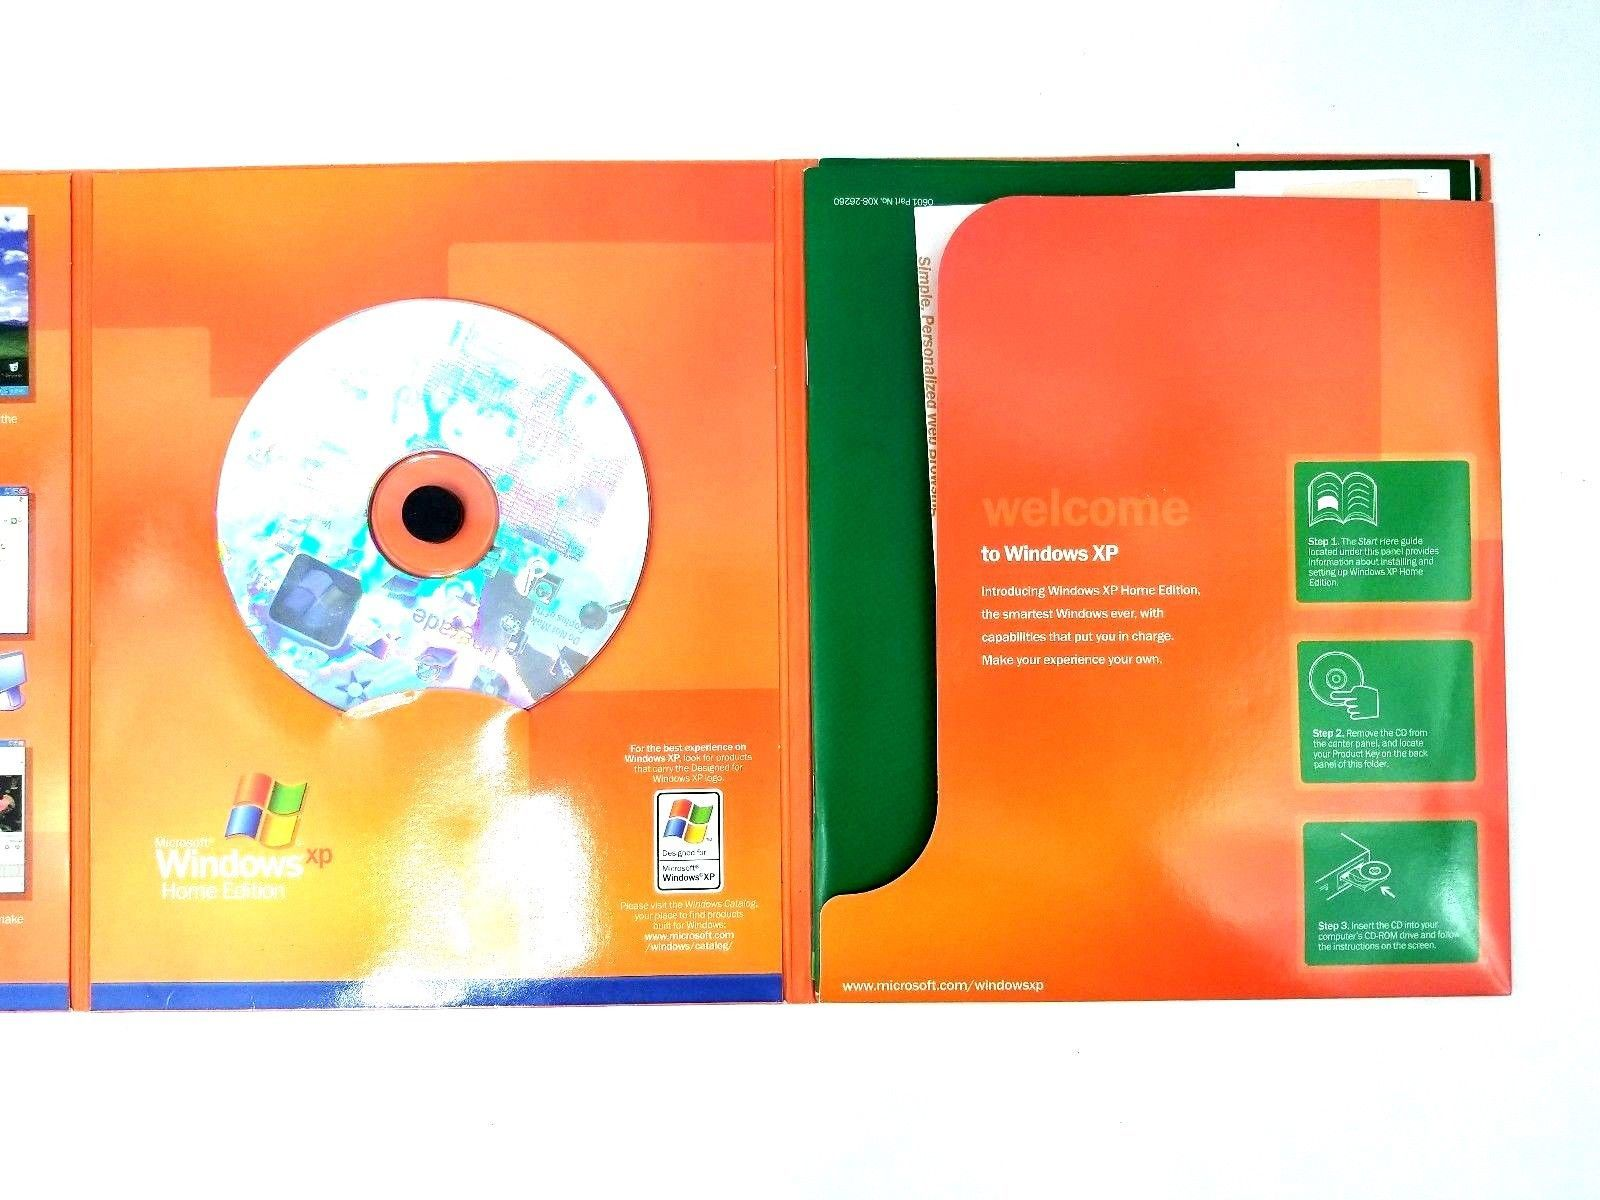 Microsoft WINDOWS XP HOME EDITION Upgrade Version 2002 Software w/ Product Key image 2